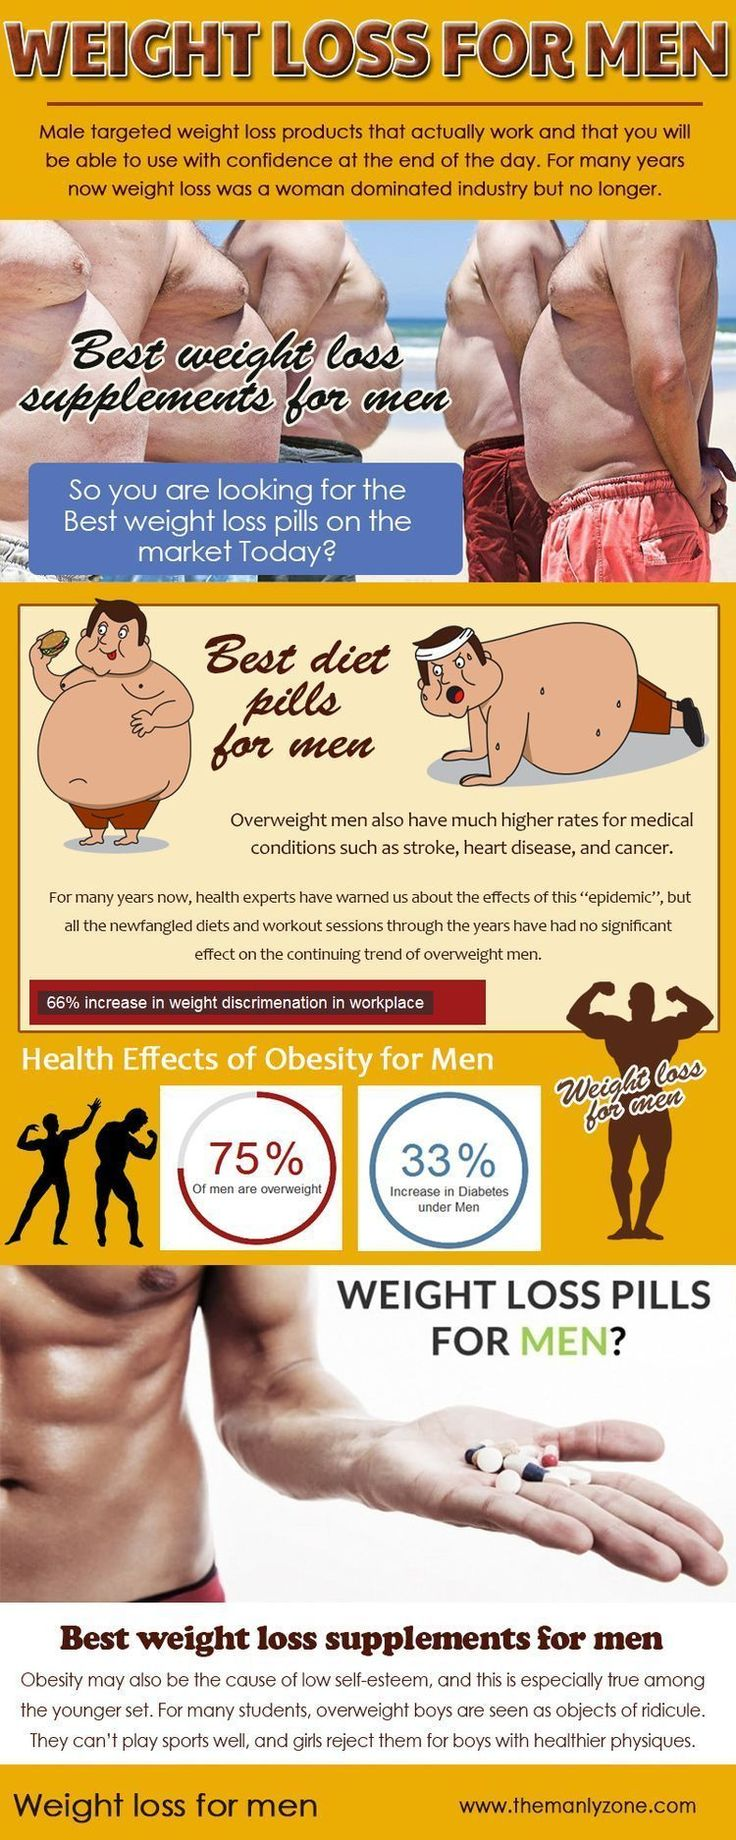 Click this site http://www.themanlyzone.com/best-diet-pills-men-2016/ for more information on Weight Loss For Men. If you are looking for the Best Weight Loss Supplements For Men, you are definitely not alone. Weight loss supplements for men have been touted as one possible way to help you to lose weight. These help many people manage their weight effectively and efficiently. In an ideal situation, supplements are added on to an exercise routine. #vitaminC #vitaminD #L4L #vitaminB #FF…